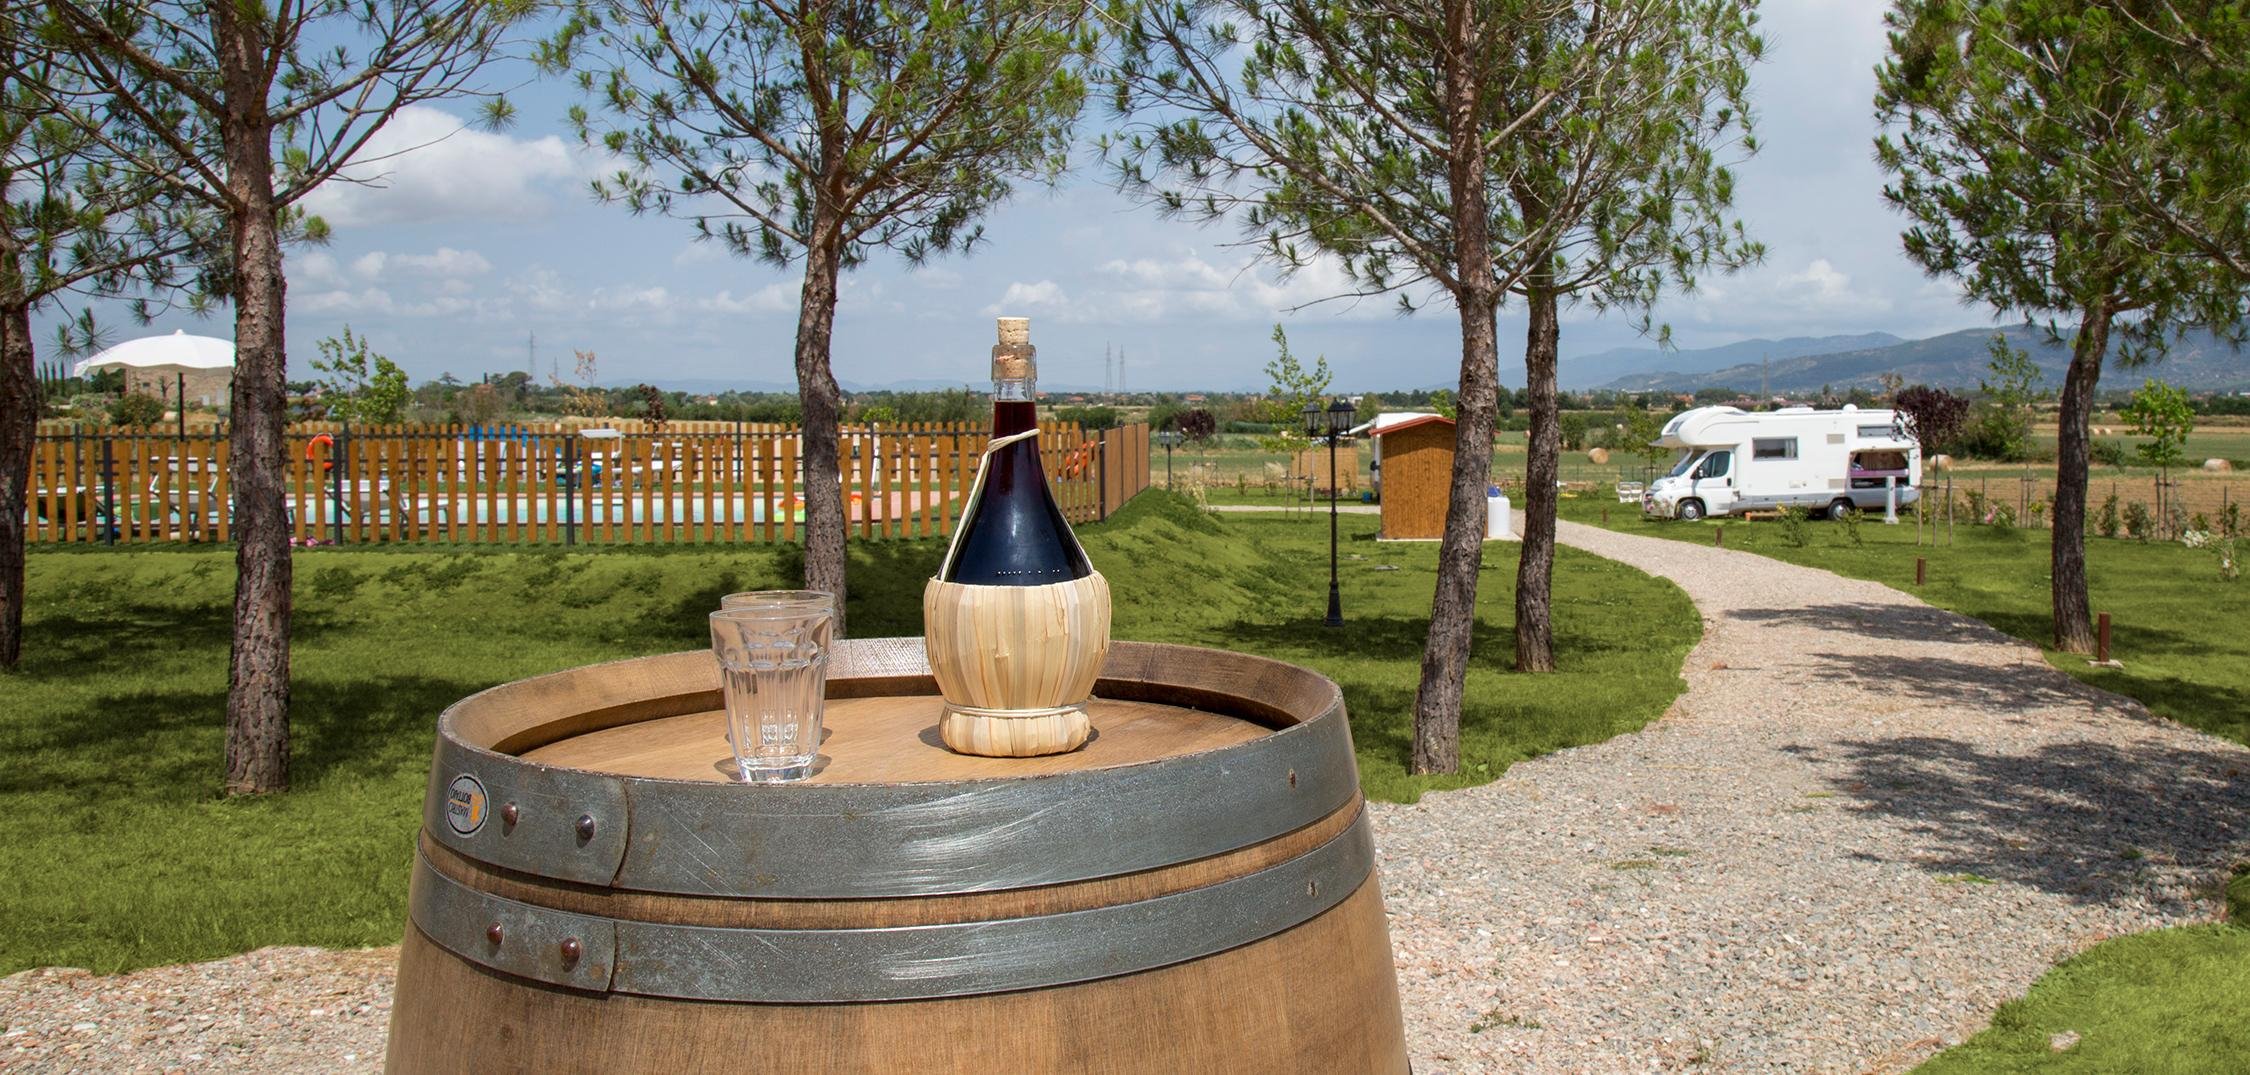 Campsite with pitches and parking areas in a farm |Cortona|Arezzo|Tuscany